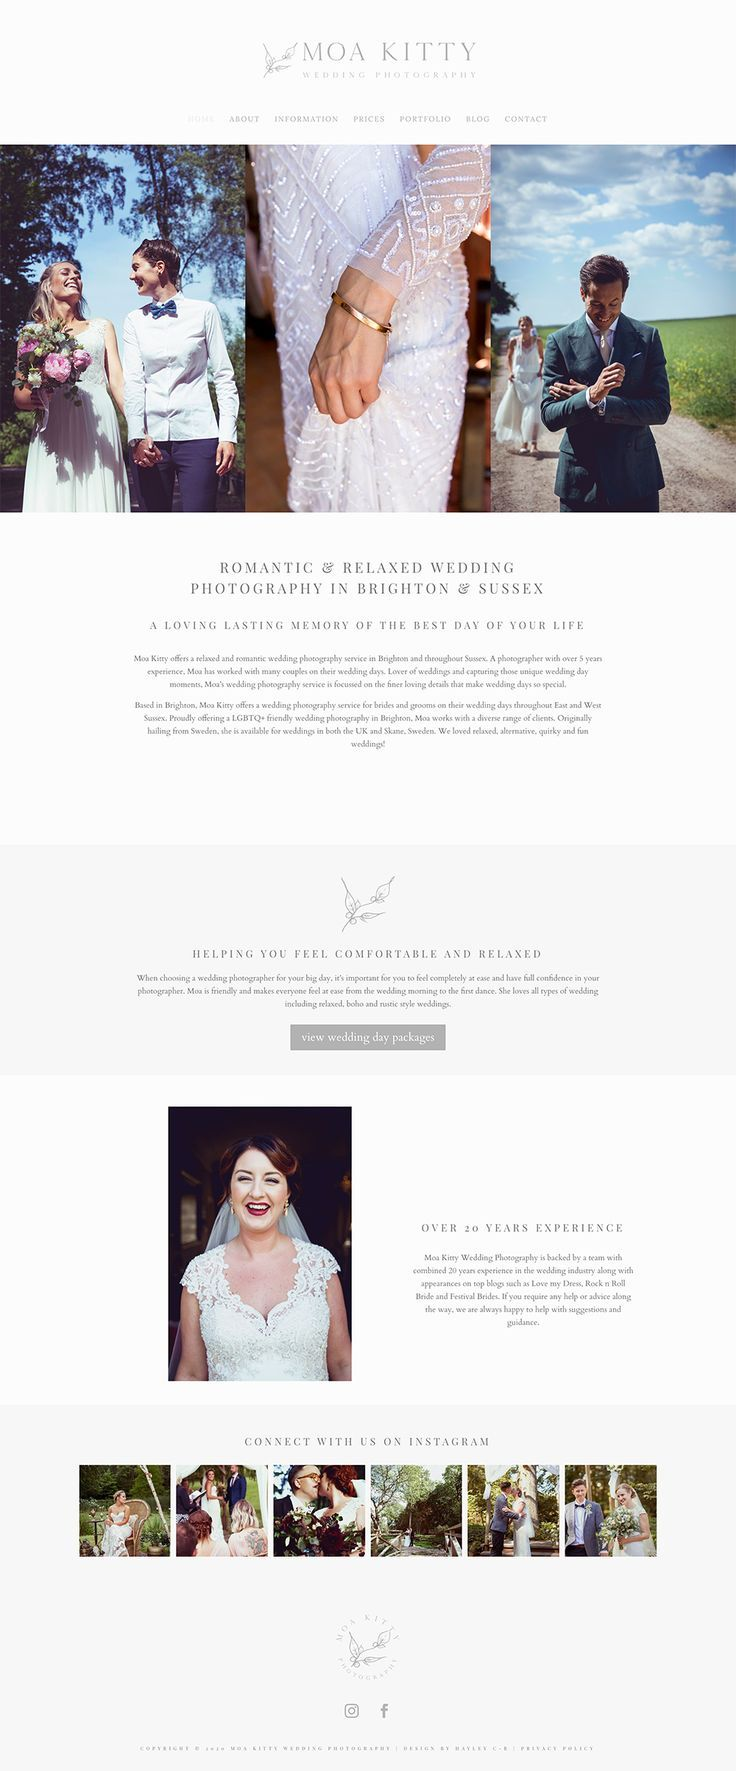 Luxury website design for wedding photography business by Hayley Comber-Berry  #wedding #weddingphotographer #weddingphotographer #logodesign